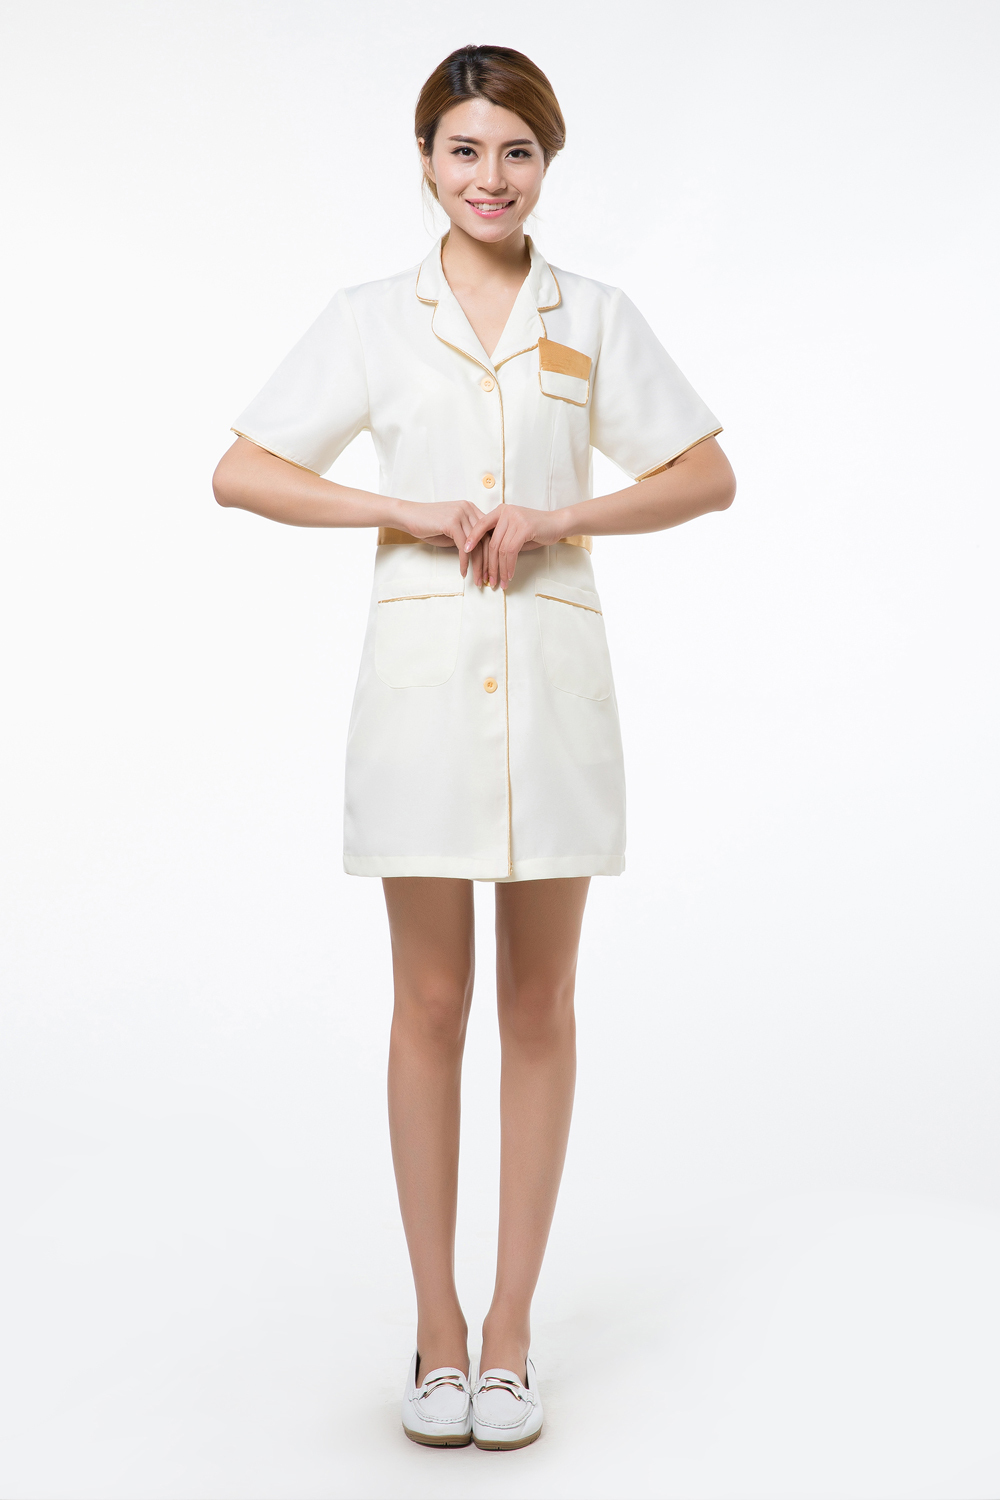 Buy hospital nursing gowns and get free shipping on AliExpress.com